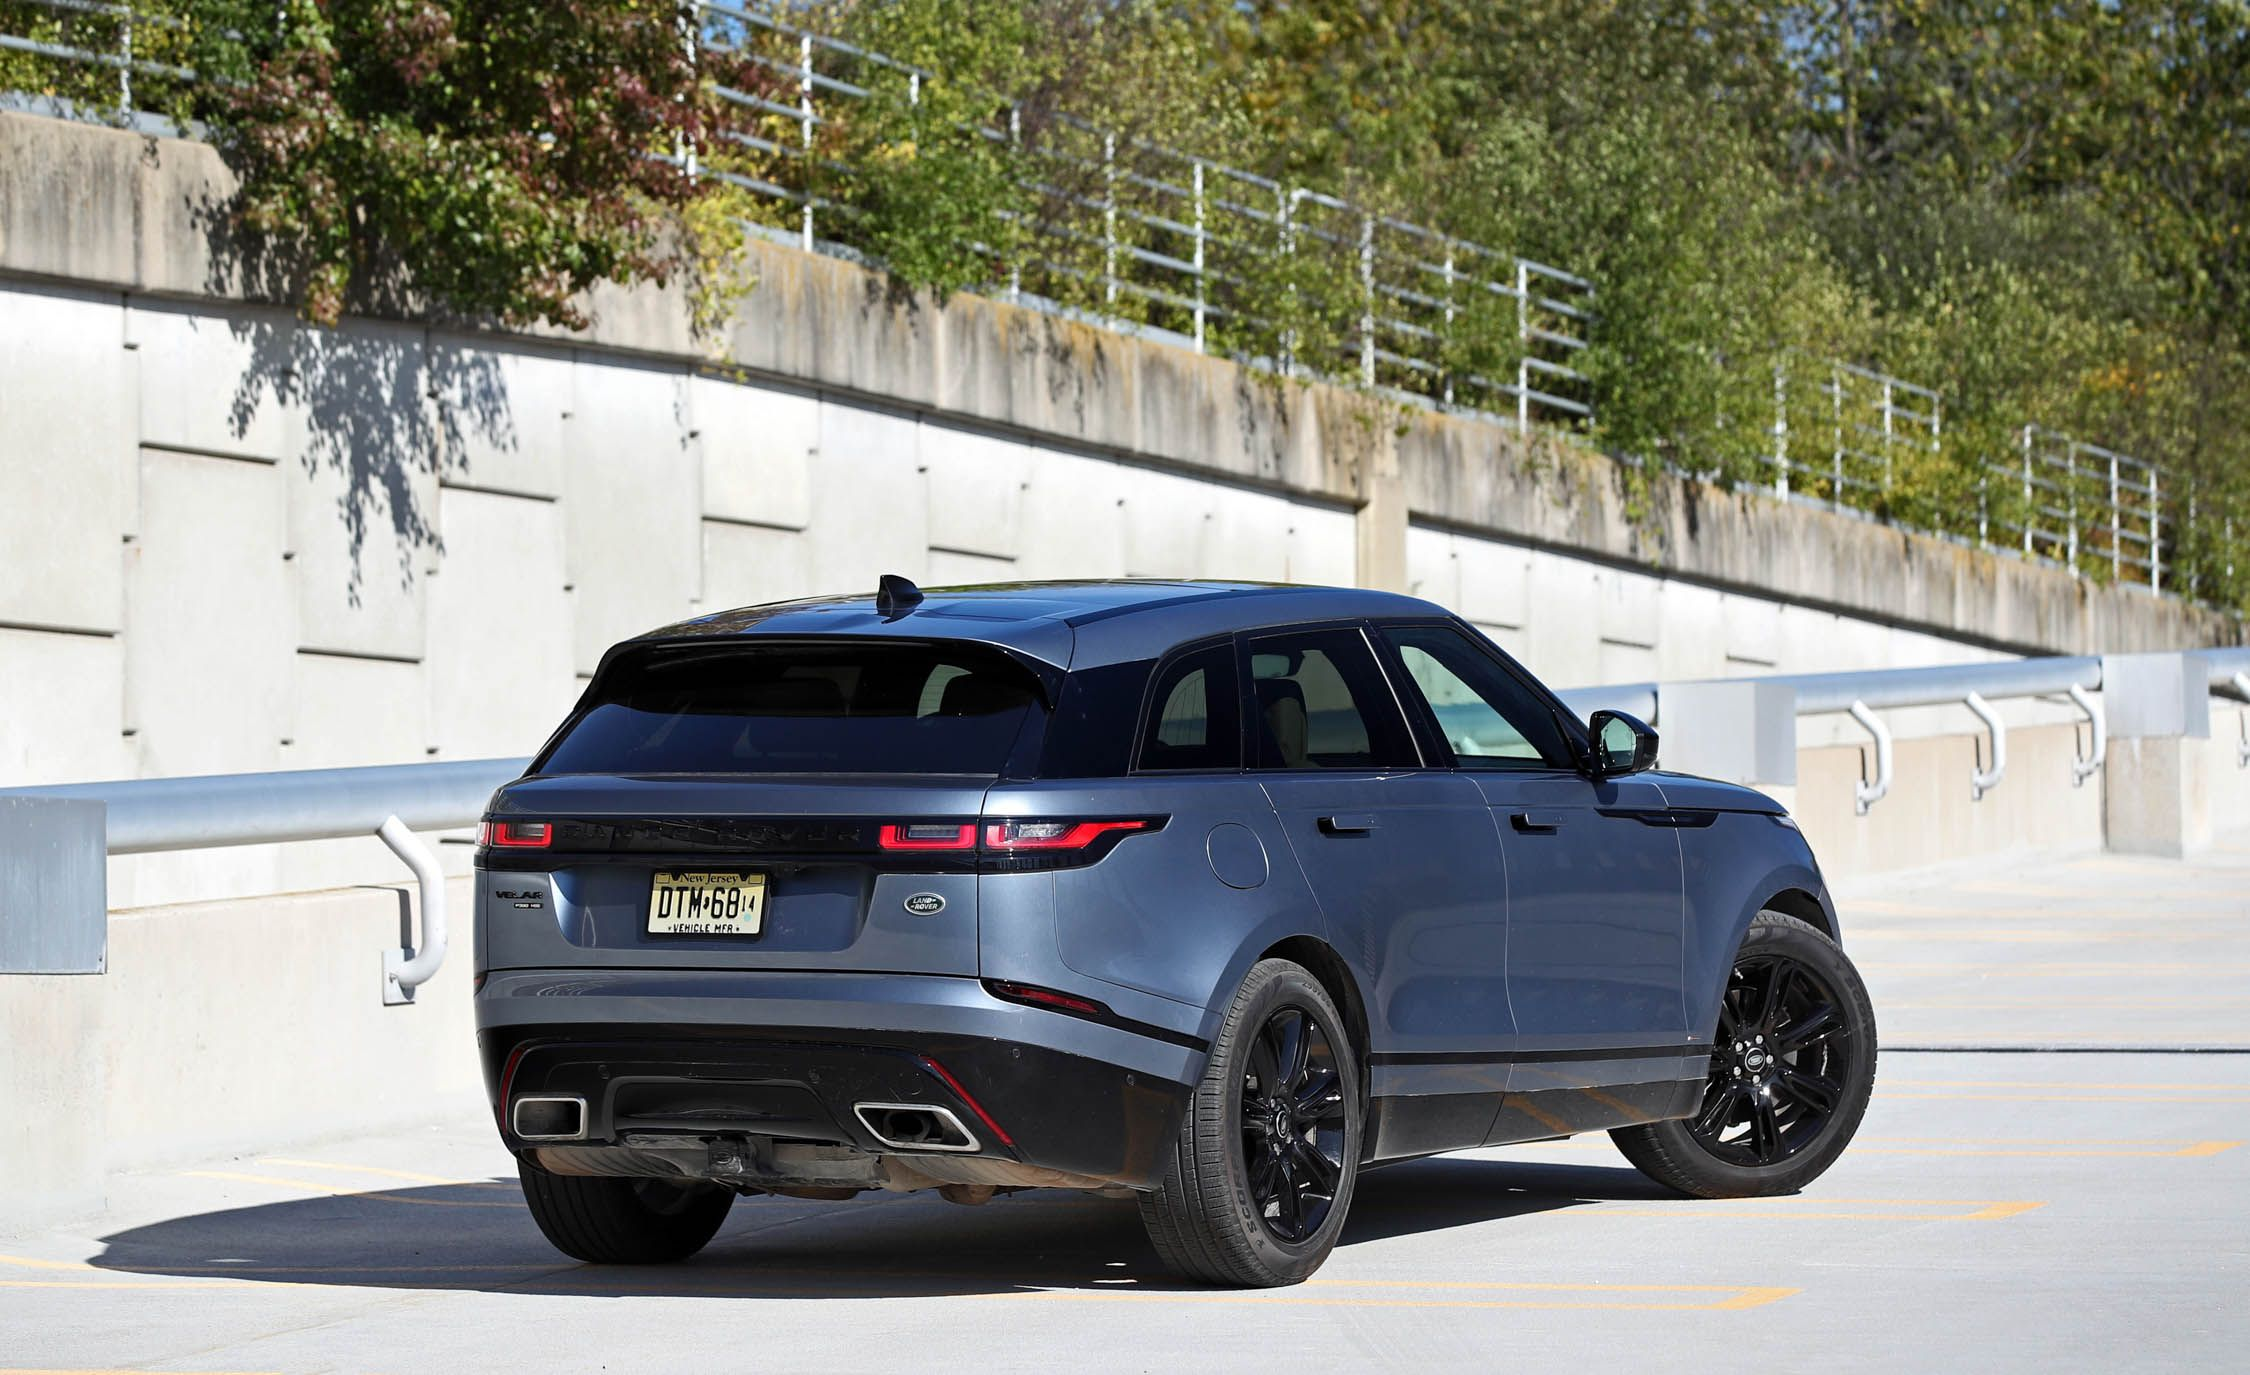 range miami velocity santorini plus land lease in evoque landrover finished black door rover with dynamic pin